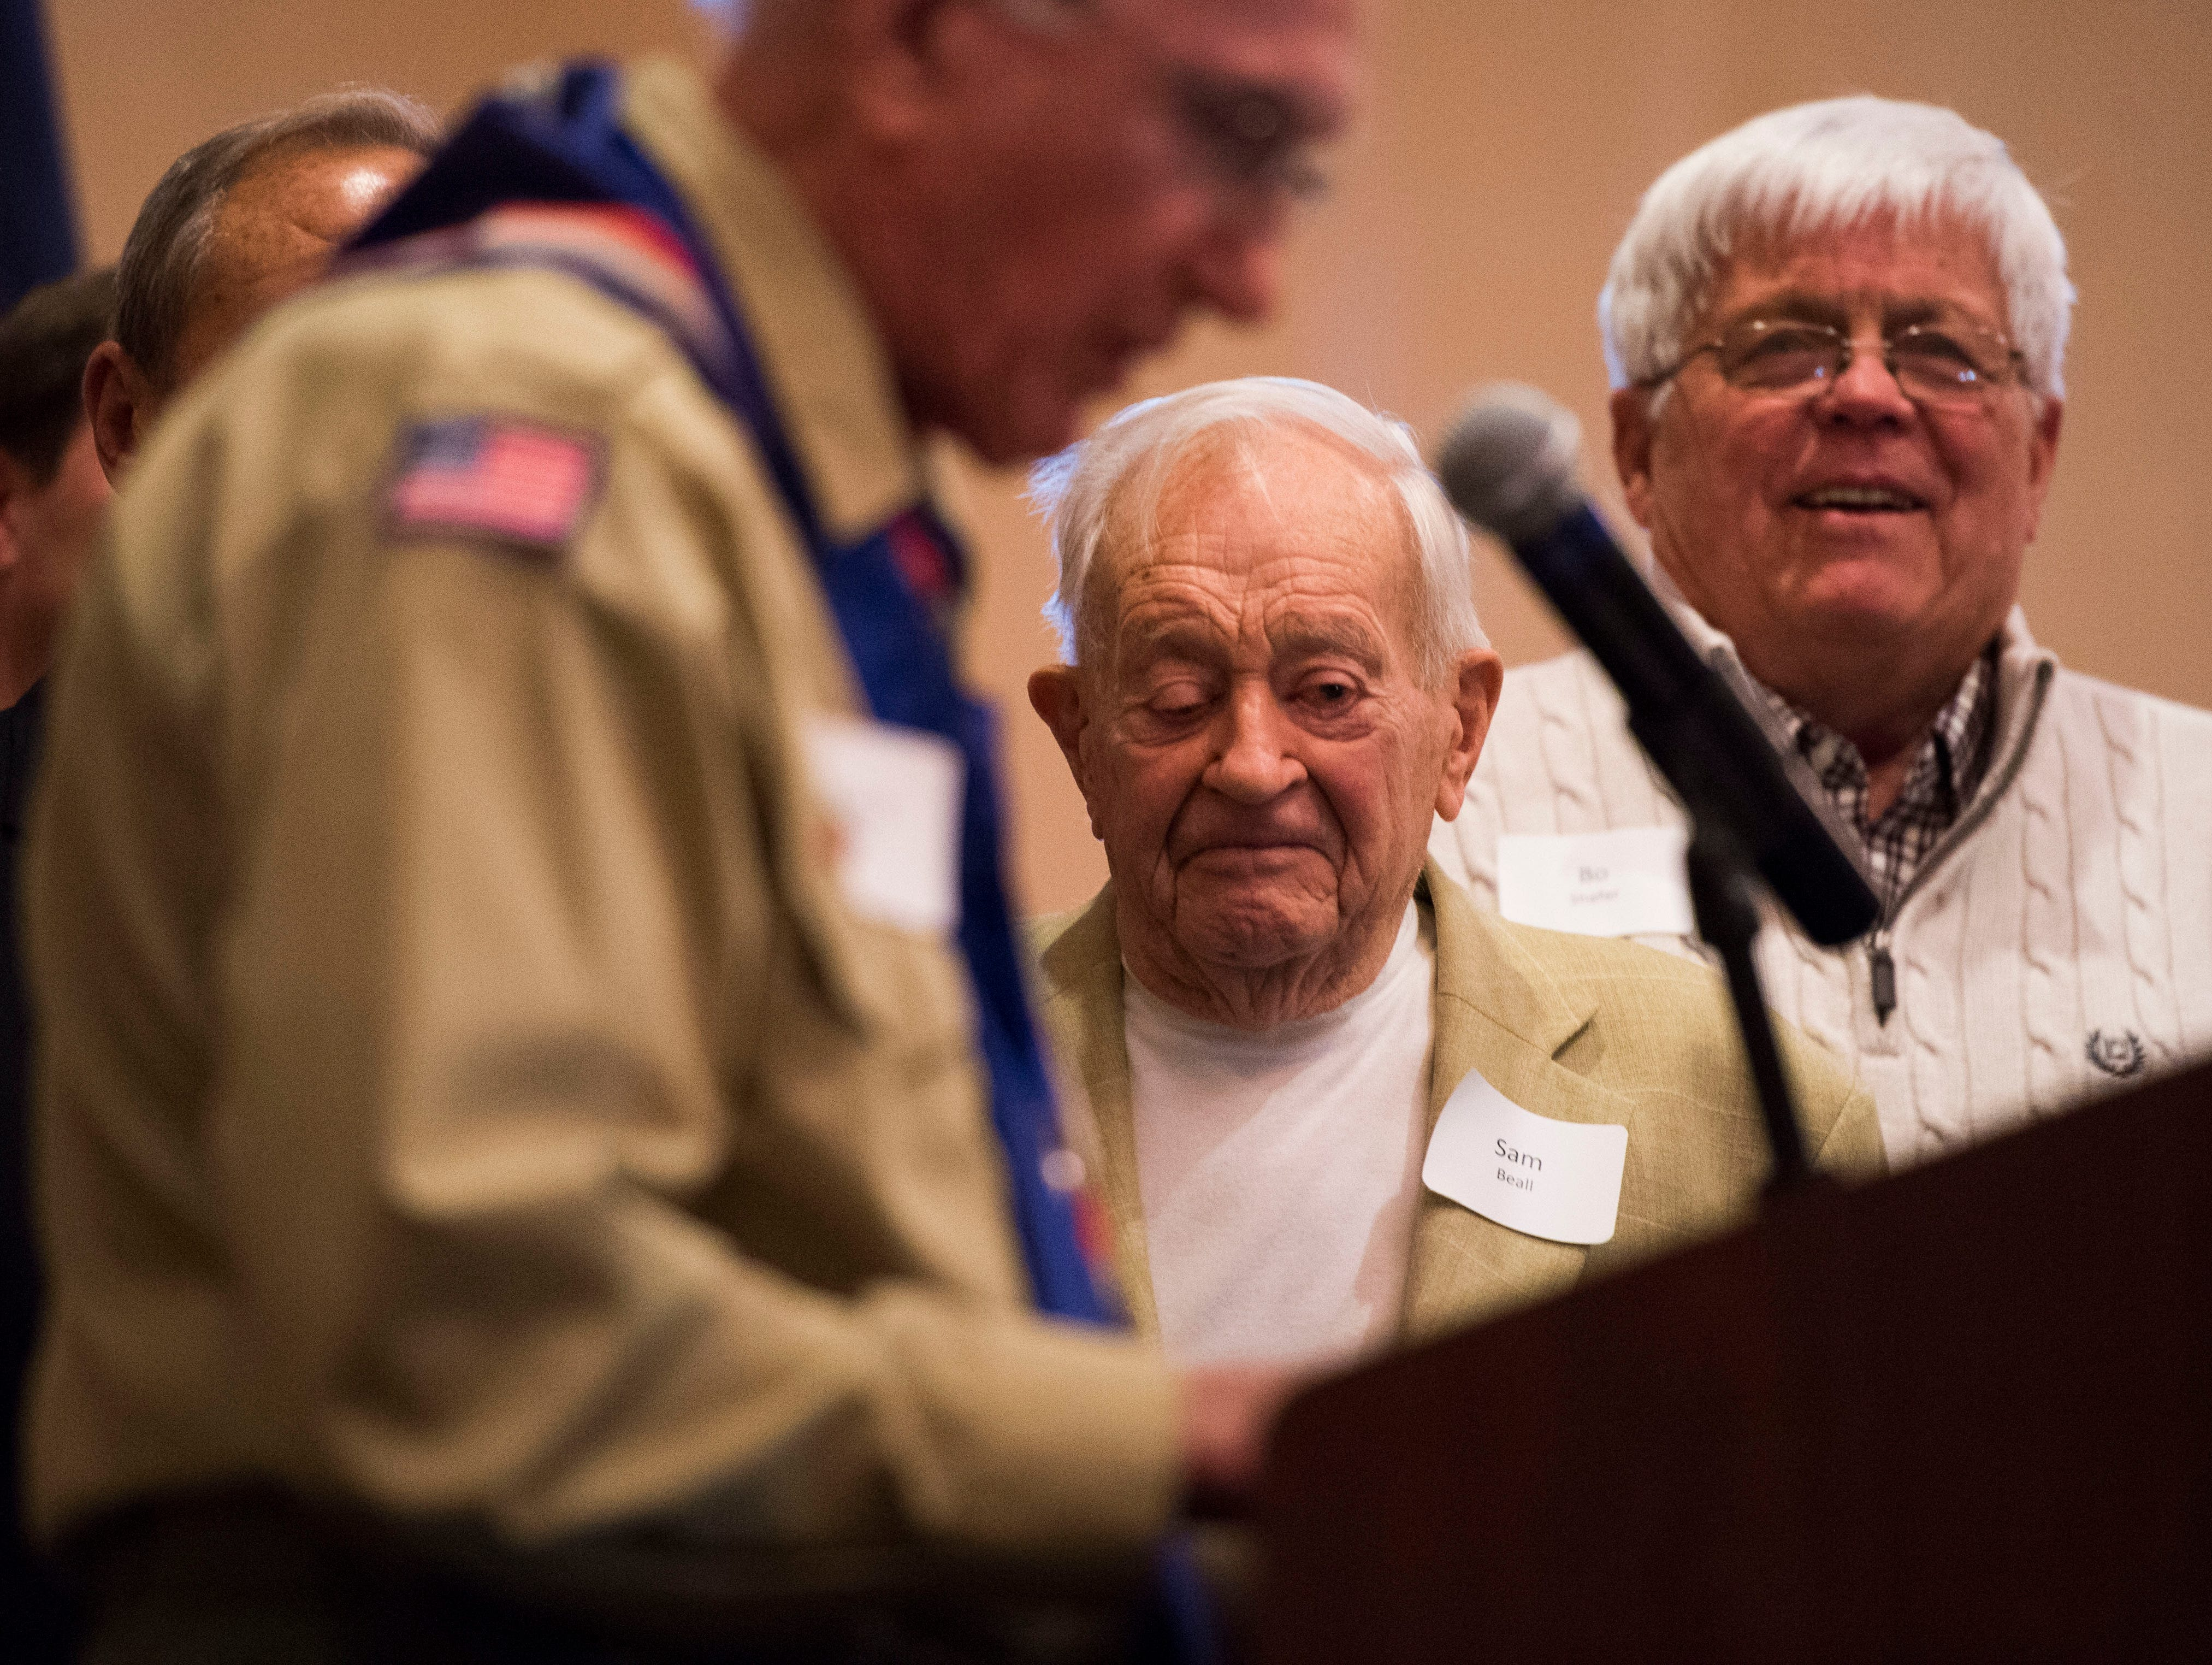 At center Sam Beall stands on stage at the 2018 Eagle Scout gathering held at Hotel Knoxville Thursday, Nov. 15, 2018. Beall received the Silver Beaver award, which is the highest award in scouting.